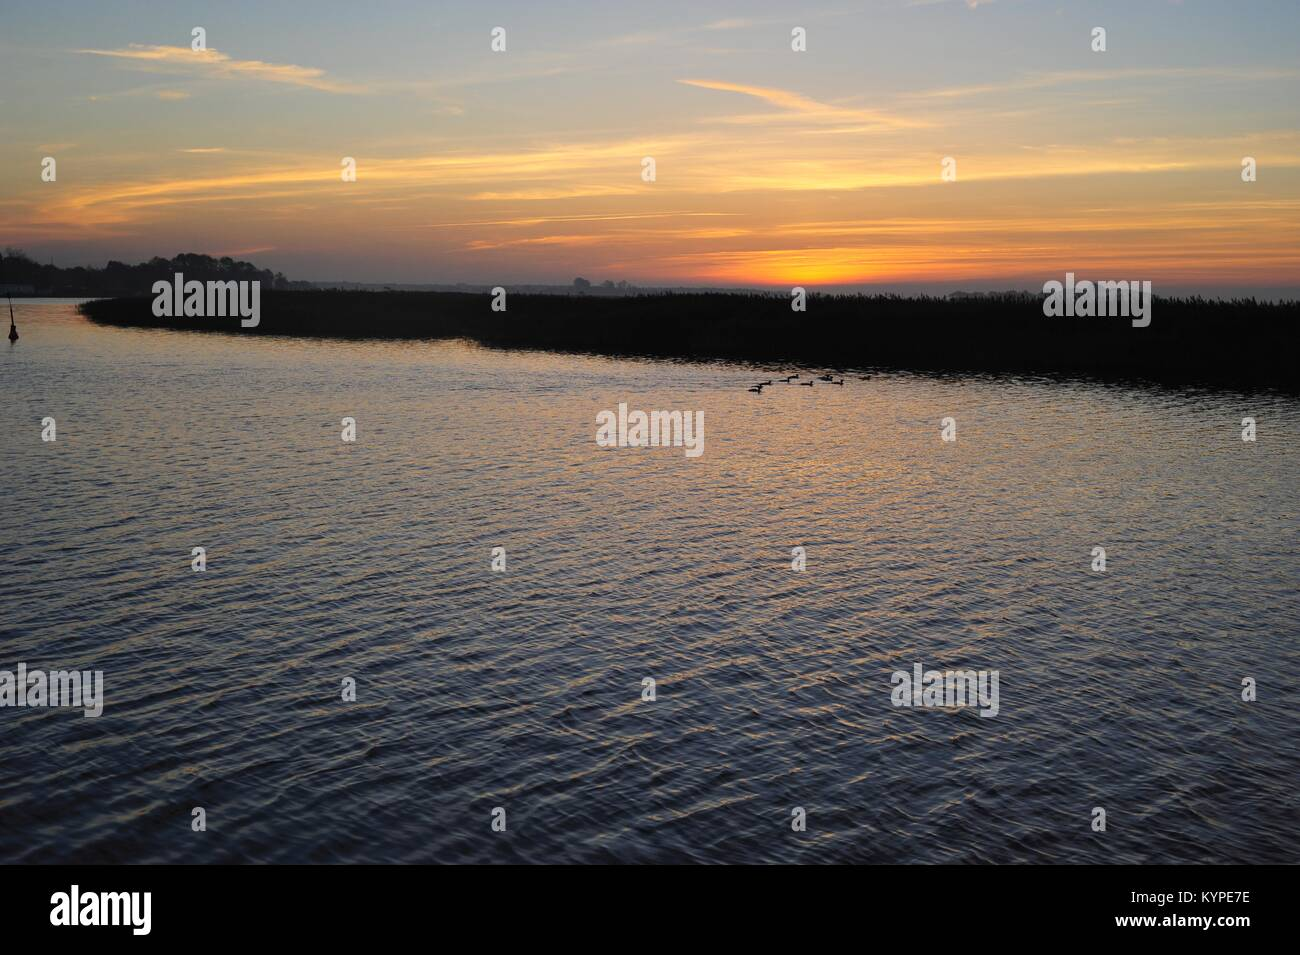 Sunset over the Baltic Sea in spring - Stock Image